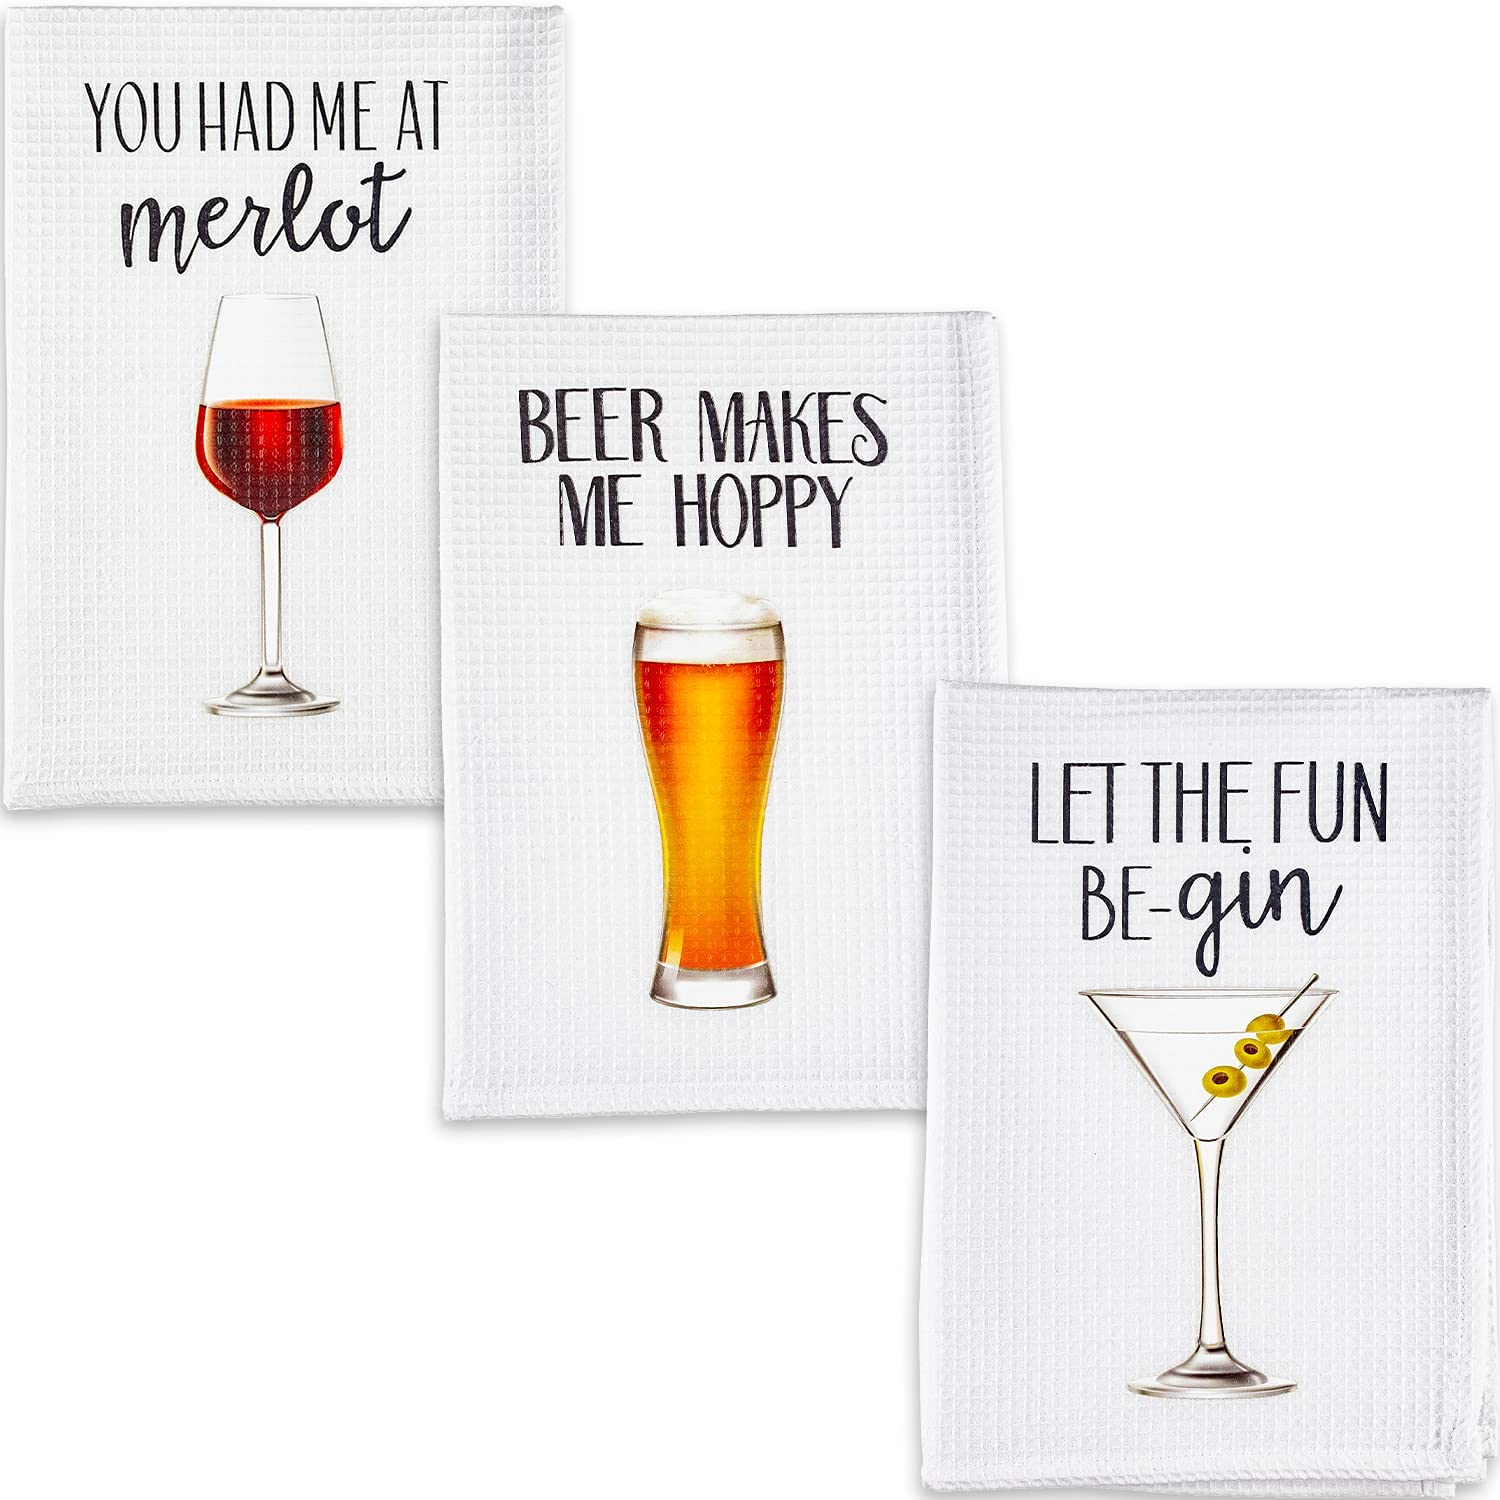 Housewarming Gifts New Home - Funny Dish Towels as Housewarming Gifts for Women, House Warming Presents for Women, Funny Kitchen Towels, House Warming Presents for New Home, New Home Gifts for Home